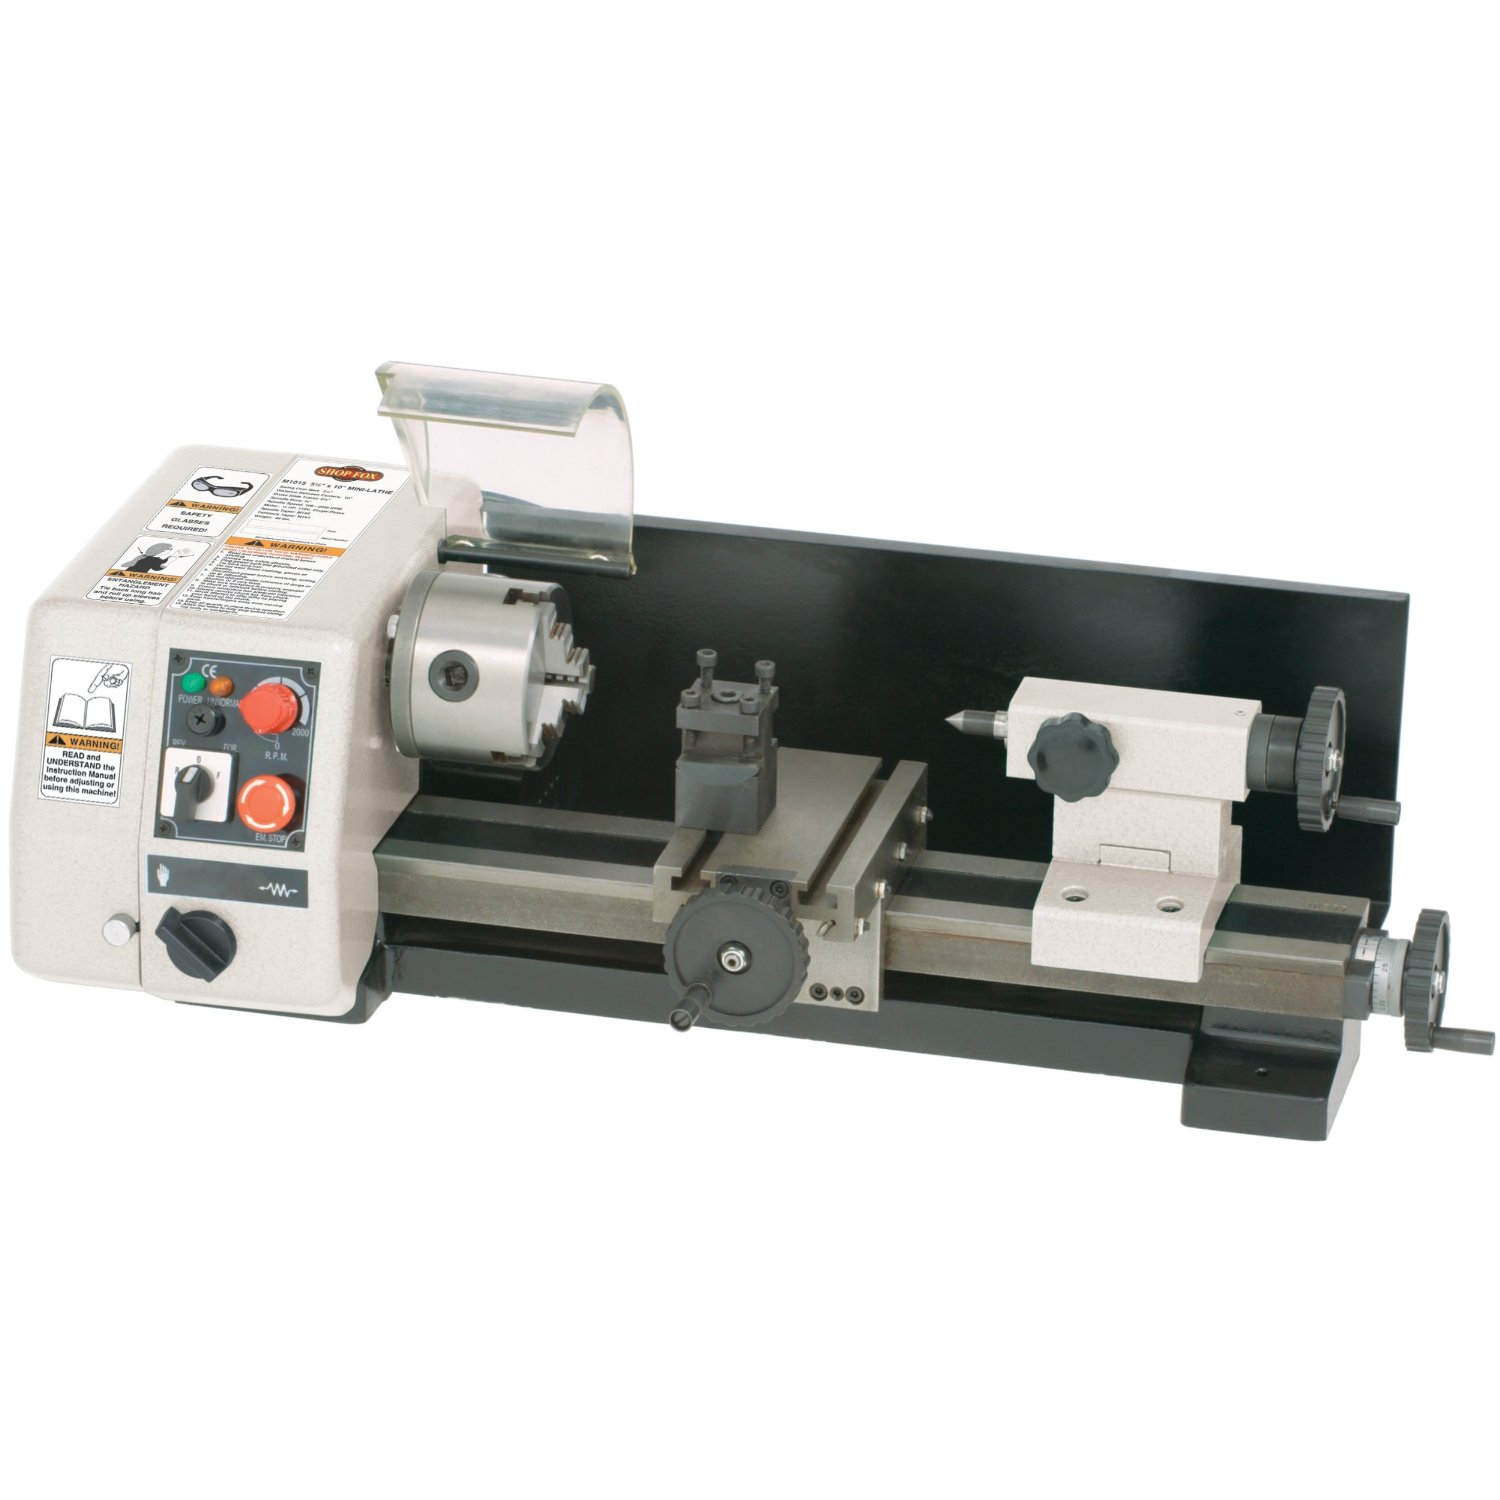 Details about Shop Fox M1015 1/5 HP 110-Volt 6-inch by 10-inch Mini Micro  Lathe